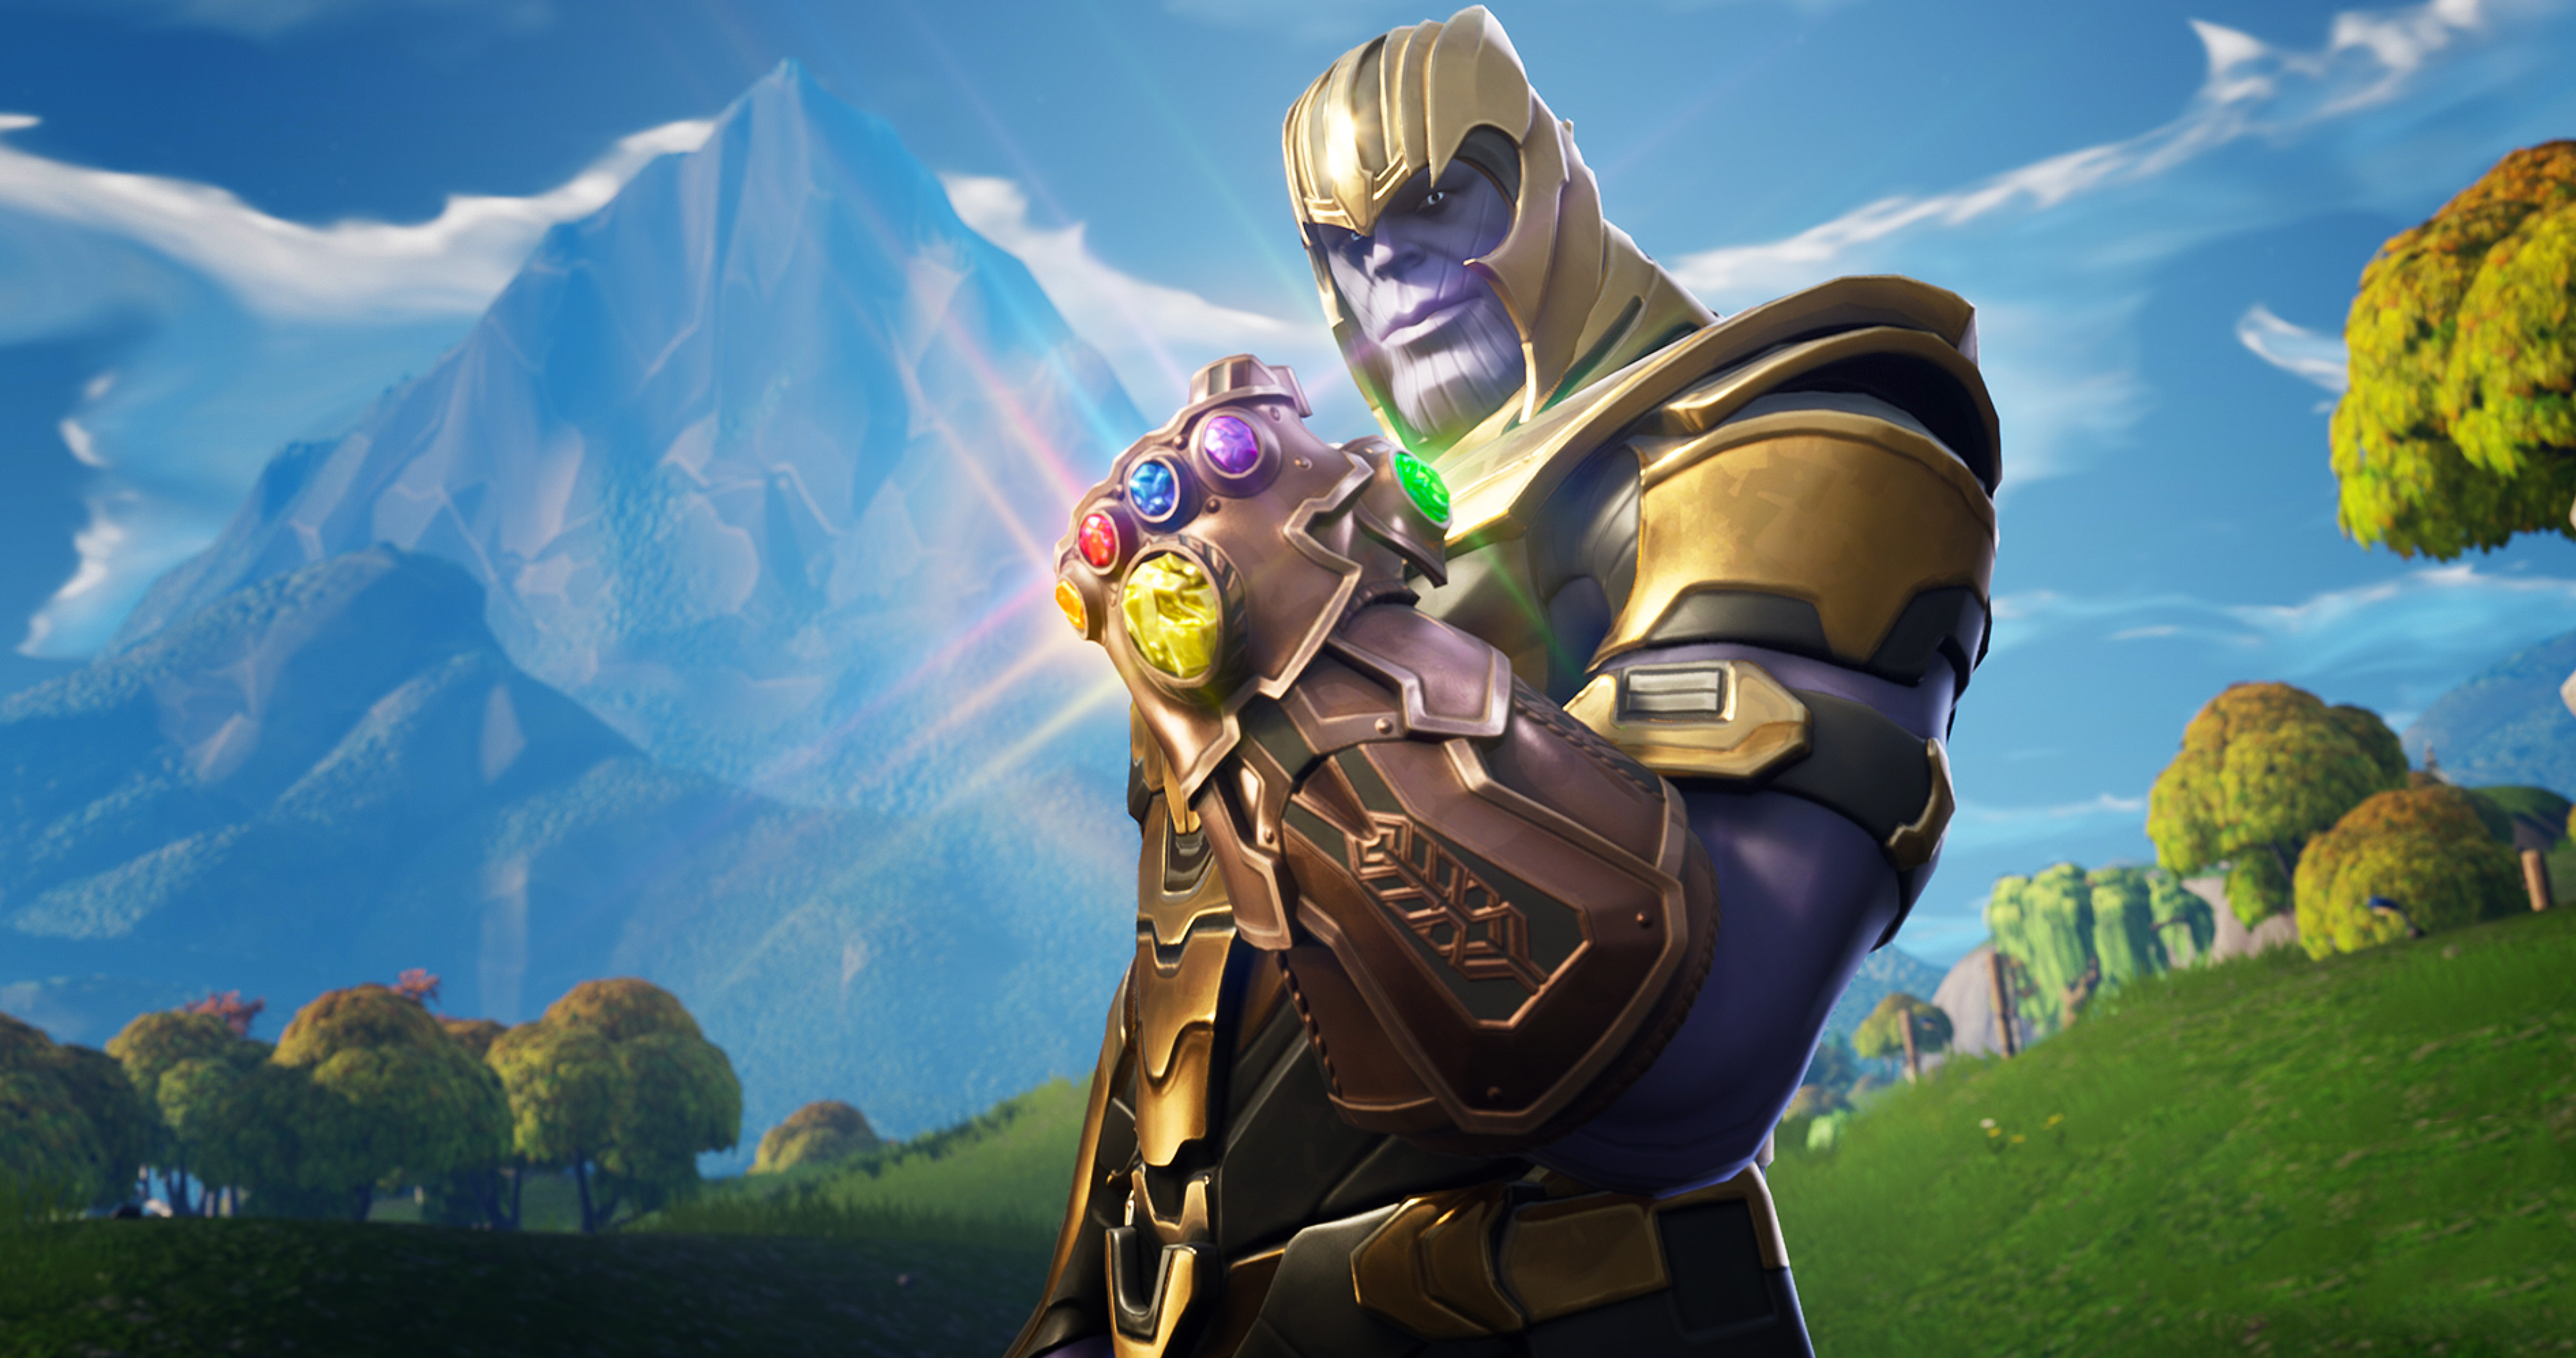 Check Out 8 New Fortnite Wallpapers Full Hd And 4k